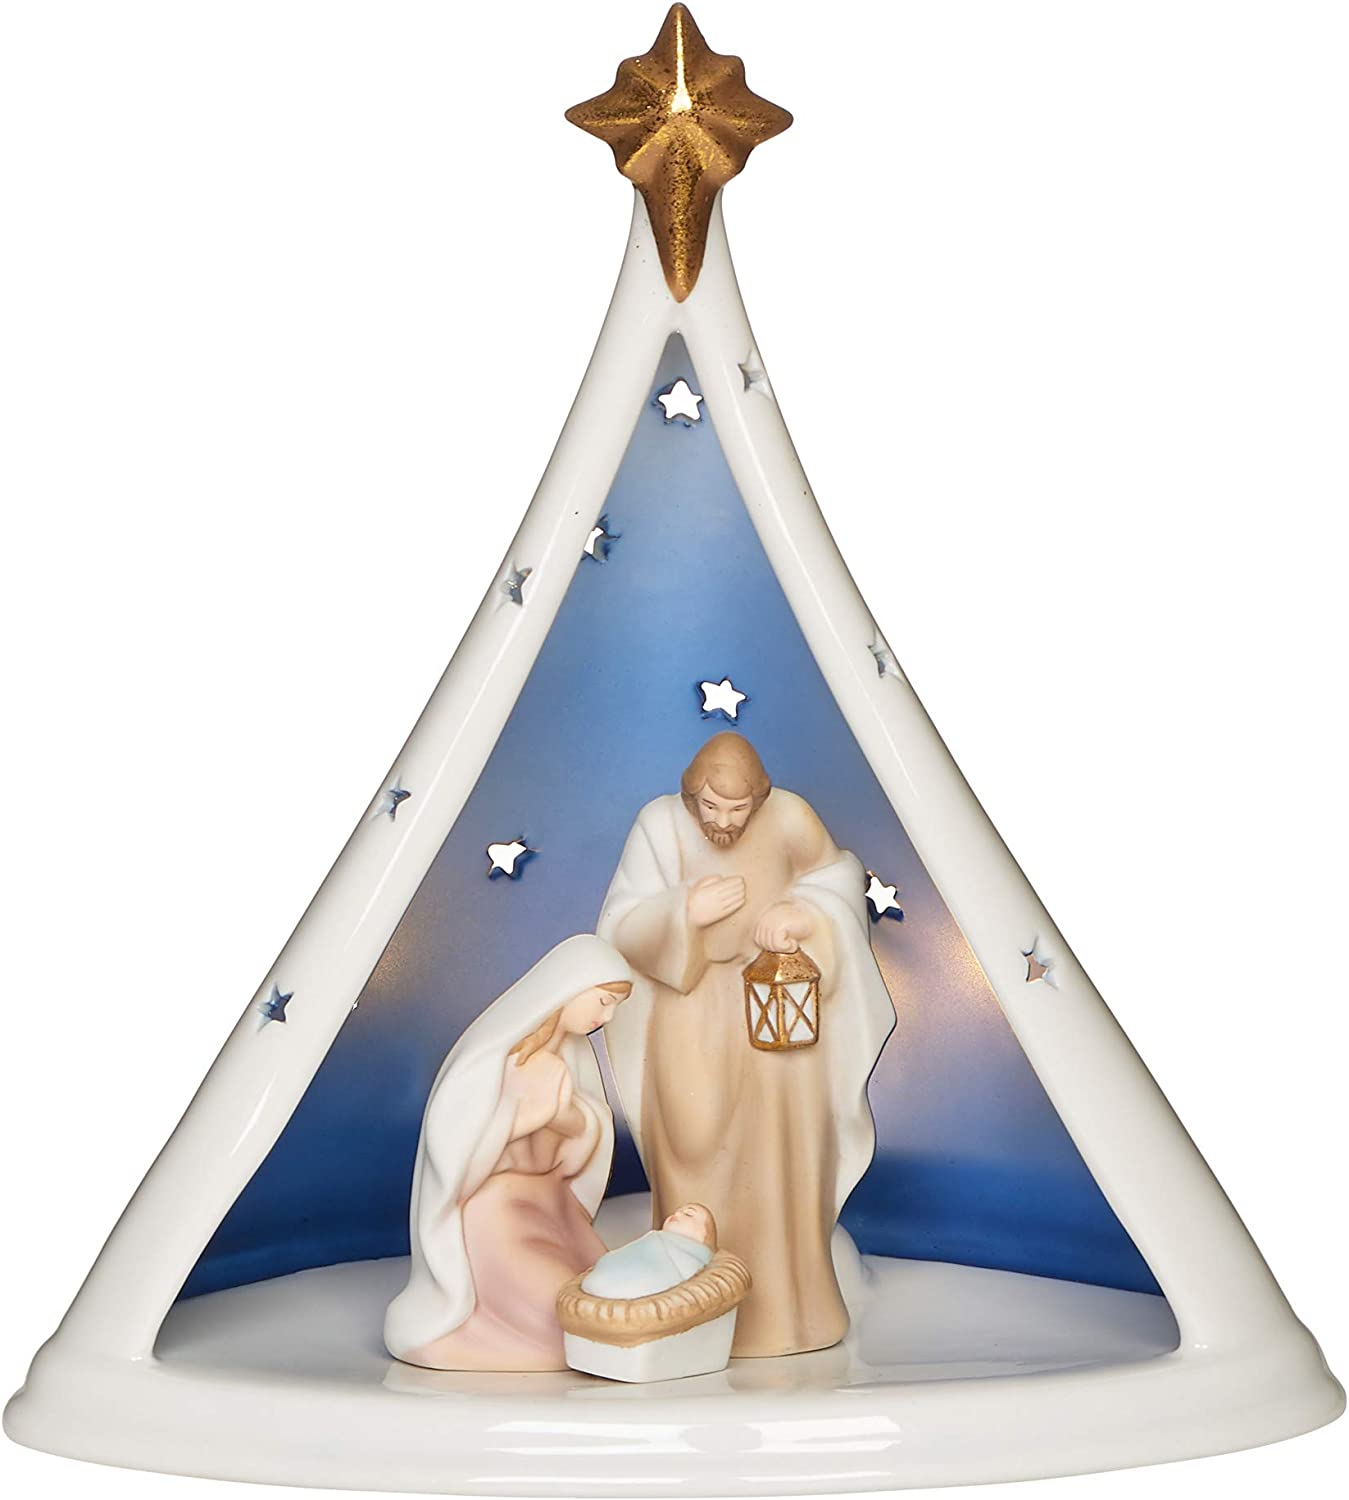 "Roman - Lighted Holy Family in Tent Creche, 8.75"" H, Porcelain, Battery Operated, Christmas Collection, Home Decor, Religious Gift, Adorable, Beautifully Detailed, Long Lasting"